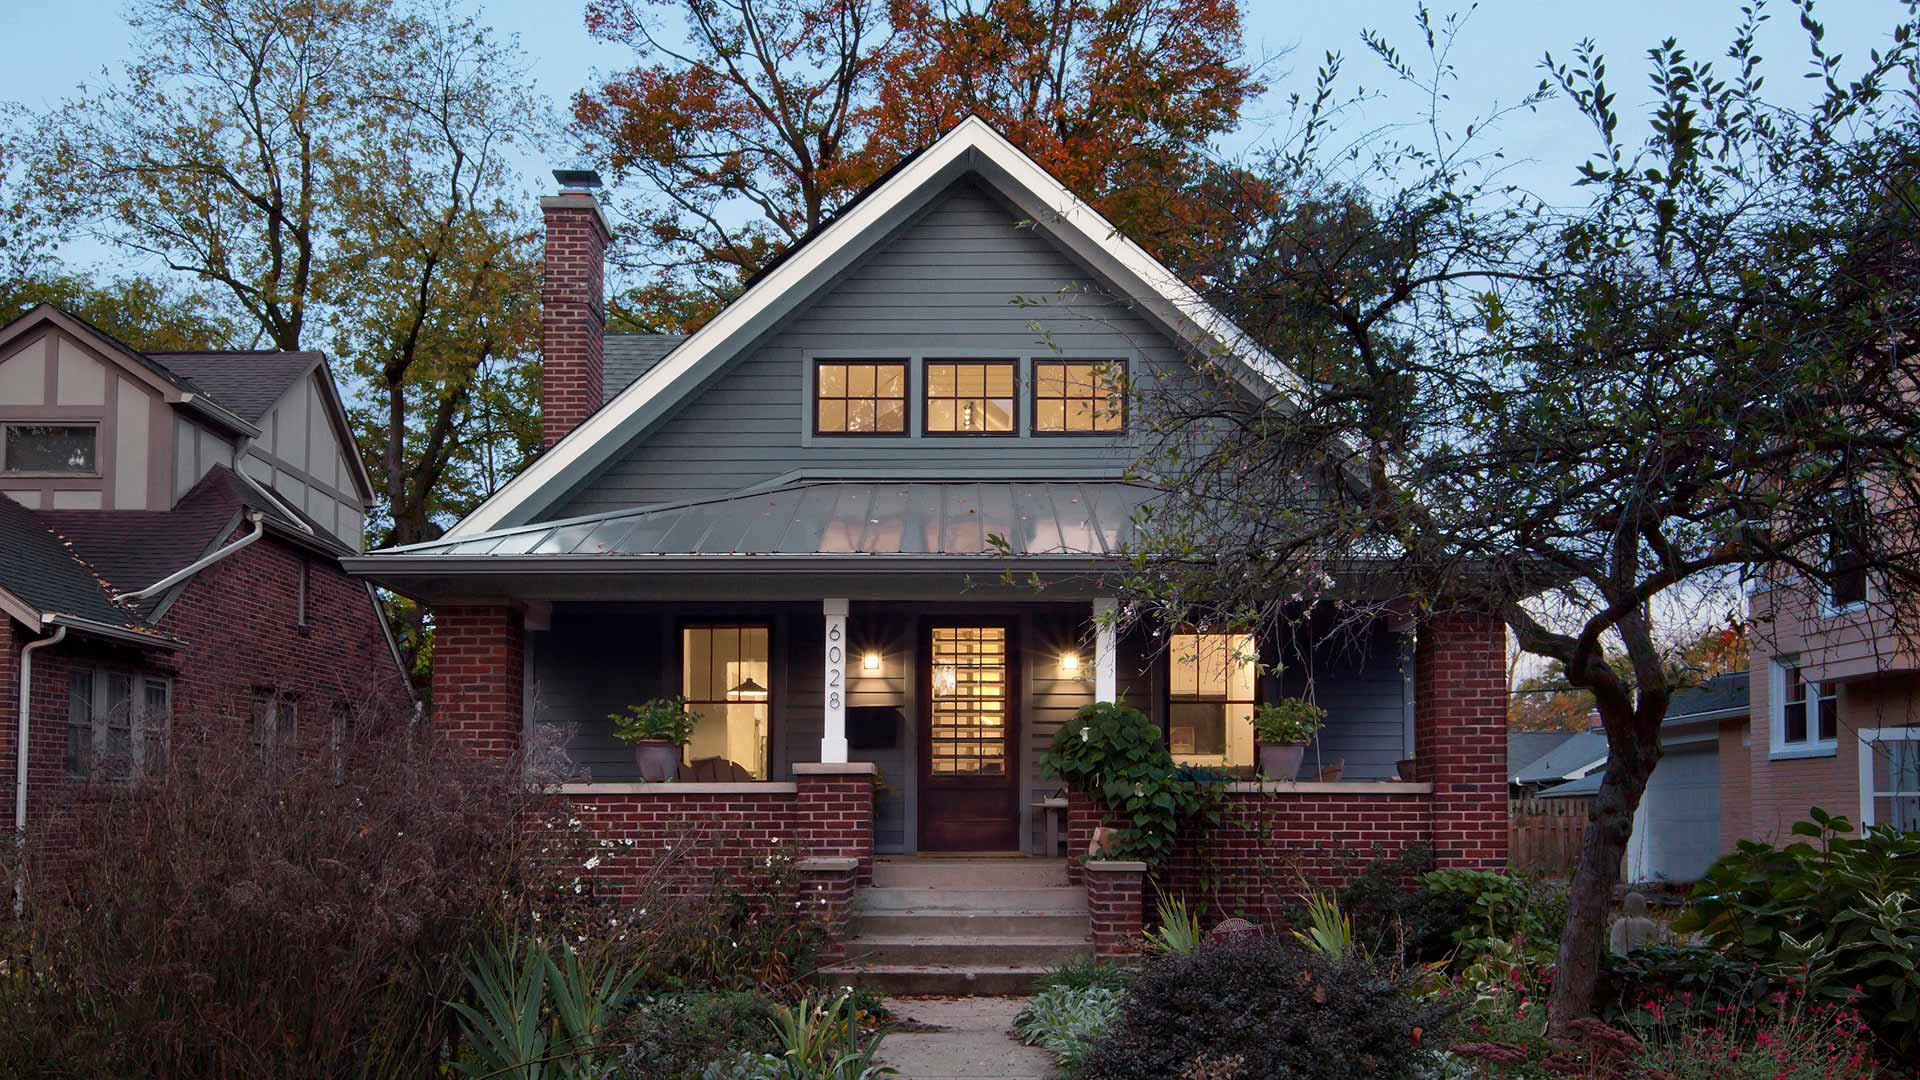 This newly reconstructed Modern Craftsman-style home maintains the scale and character of the streetscape while taking its design + detail game up a notch in this newly reconstructed Broad Ripple Modern Craftsman Dwelling on Carrollton Avenue - Indianapolis, Indiana